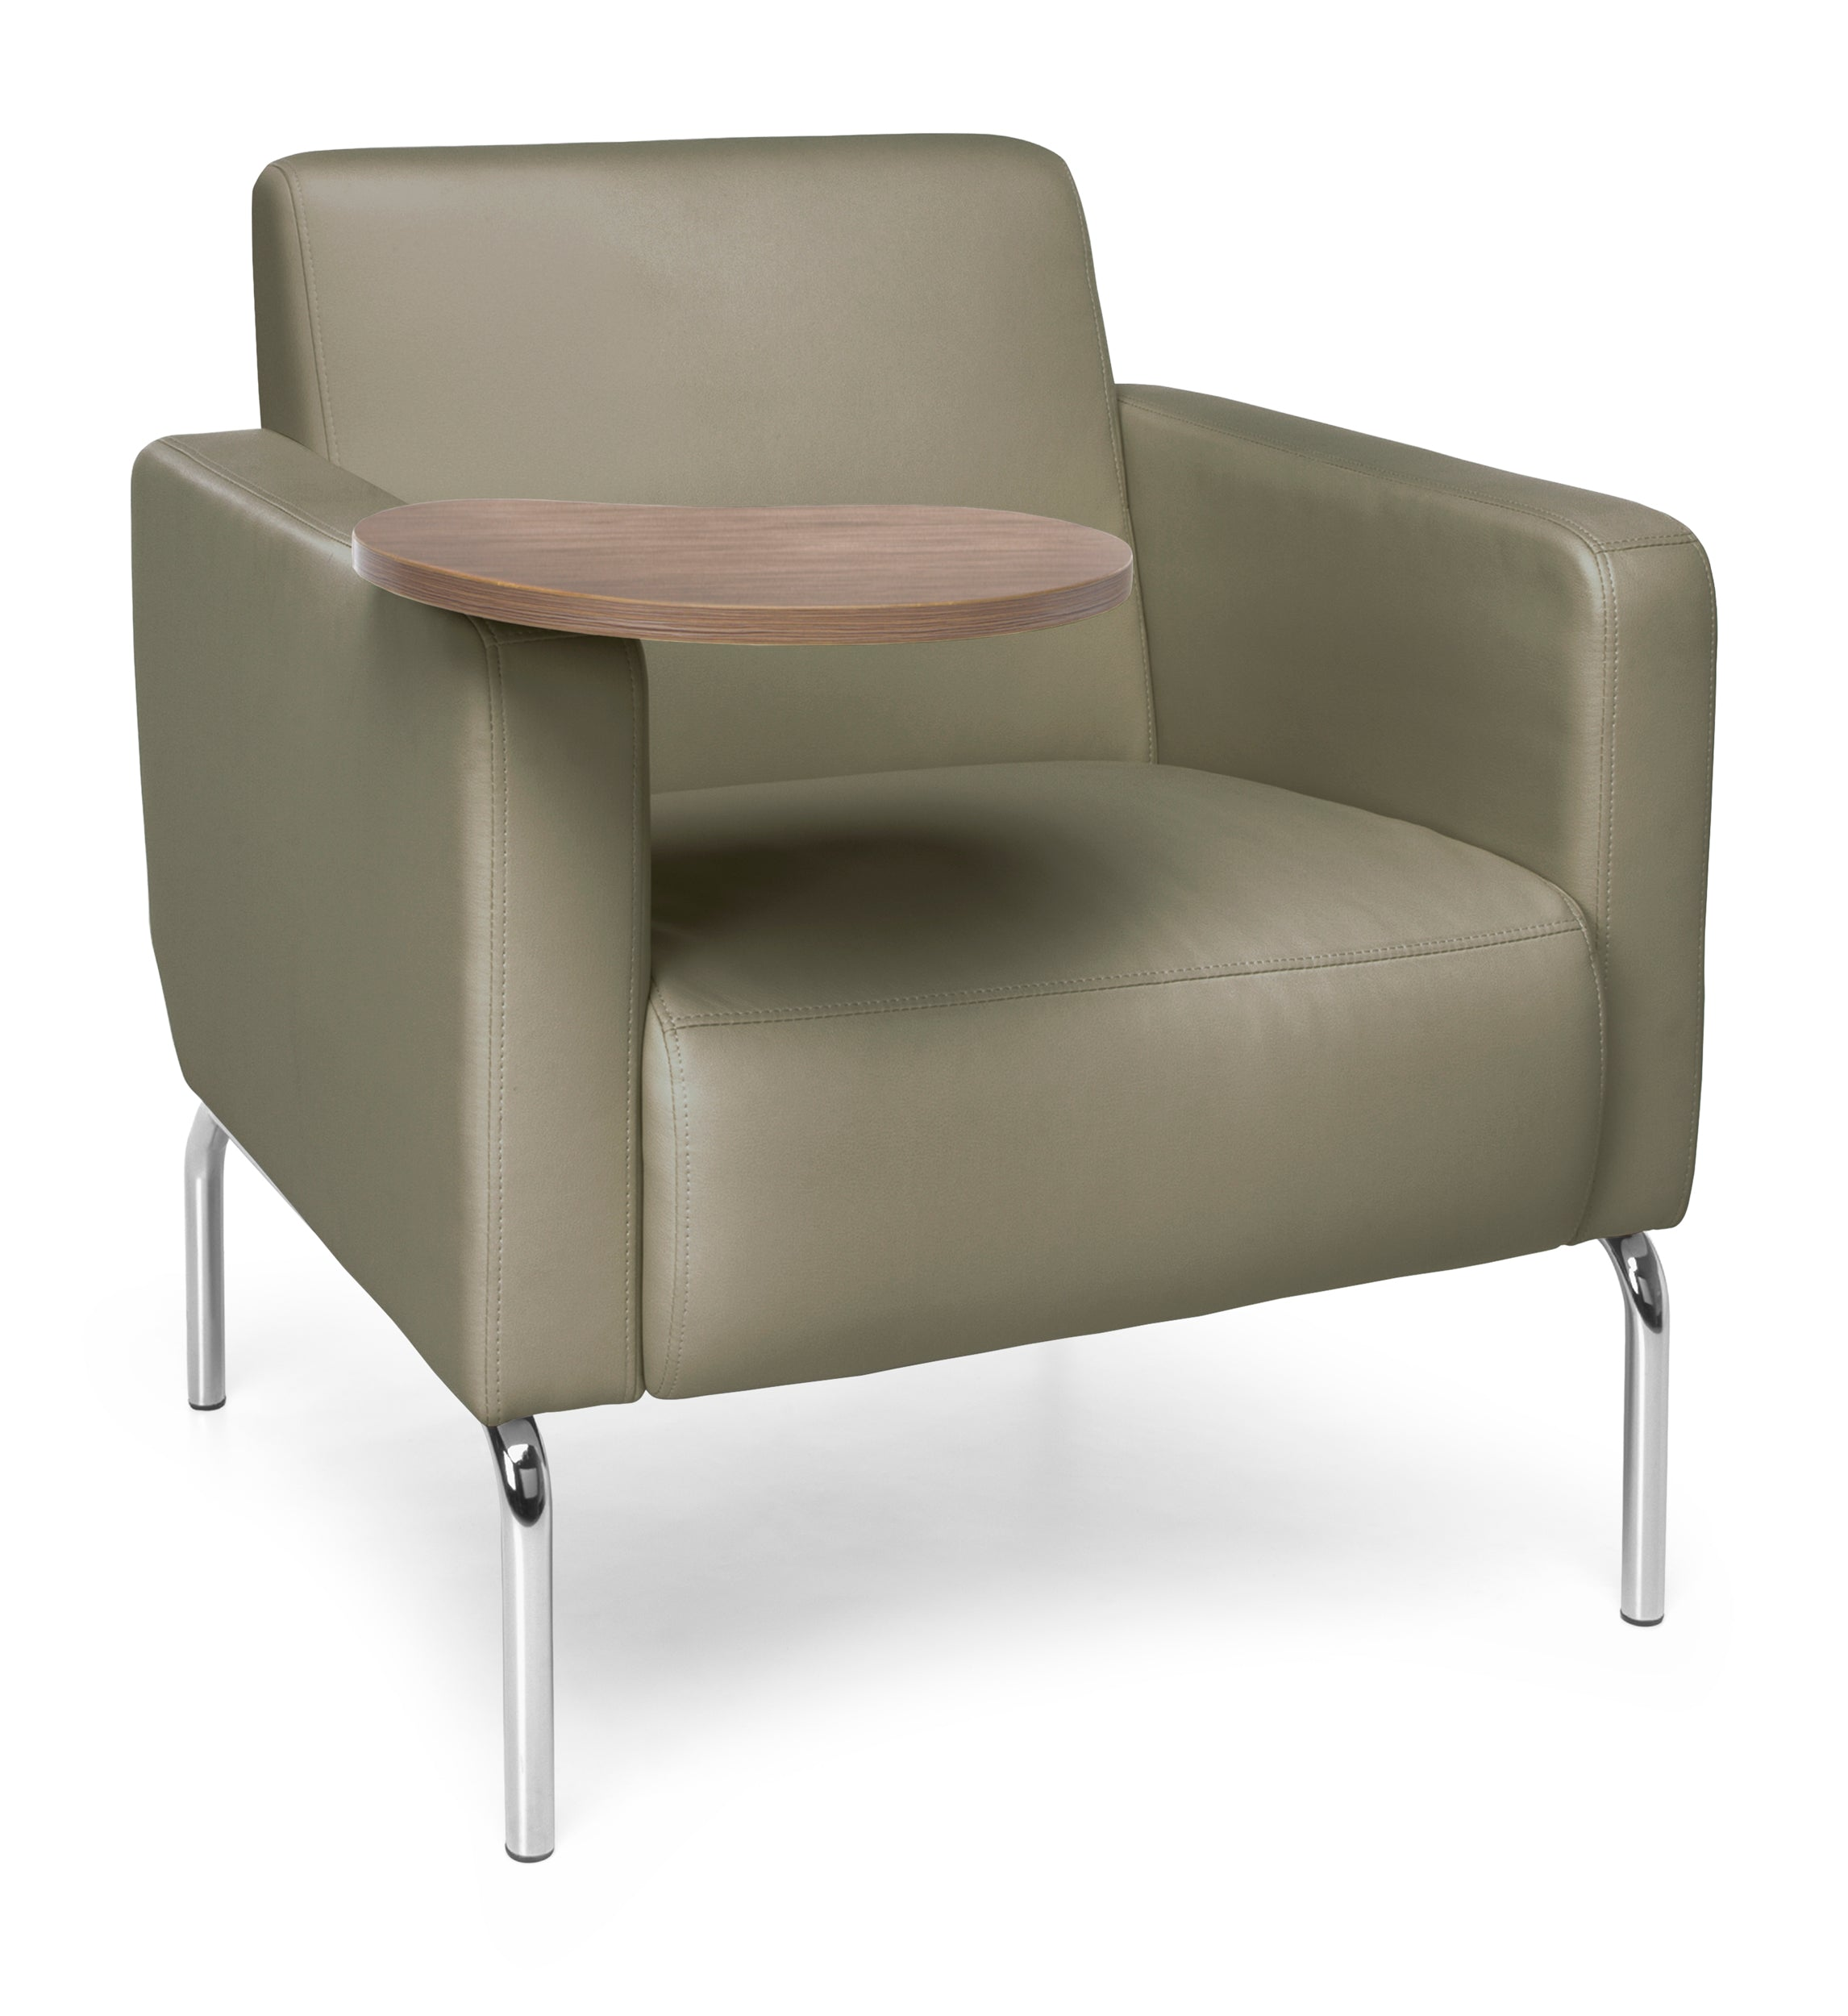 Ofminc Model 3002T Triumph Series Taupe Pu Back/Seat Lounge Chair